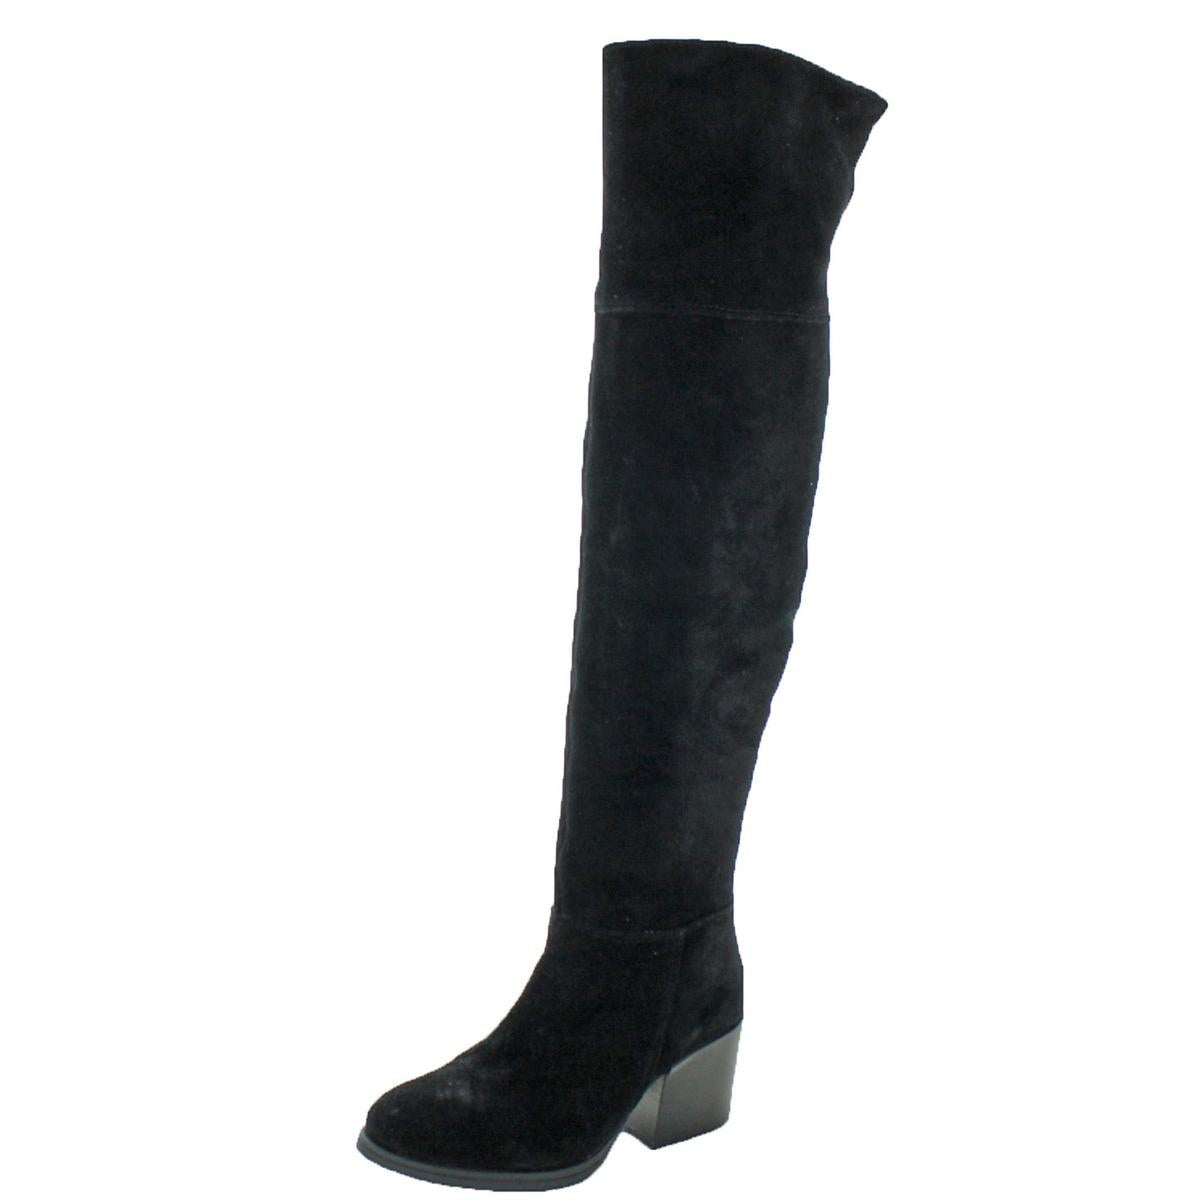 2b174a5bf9c Shop Steve Madden Womens Orabela Knee-High Boots Suede Block Heel - Free  Shipping Today - Overstock - 19989449